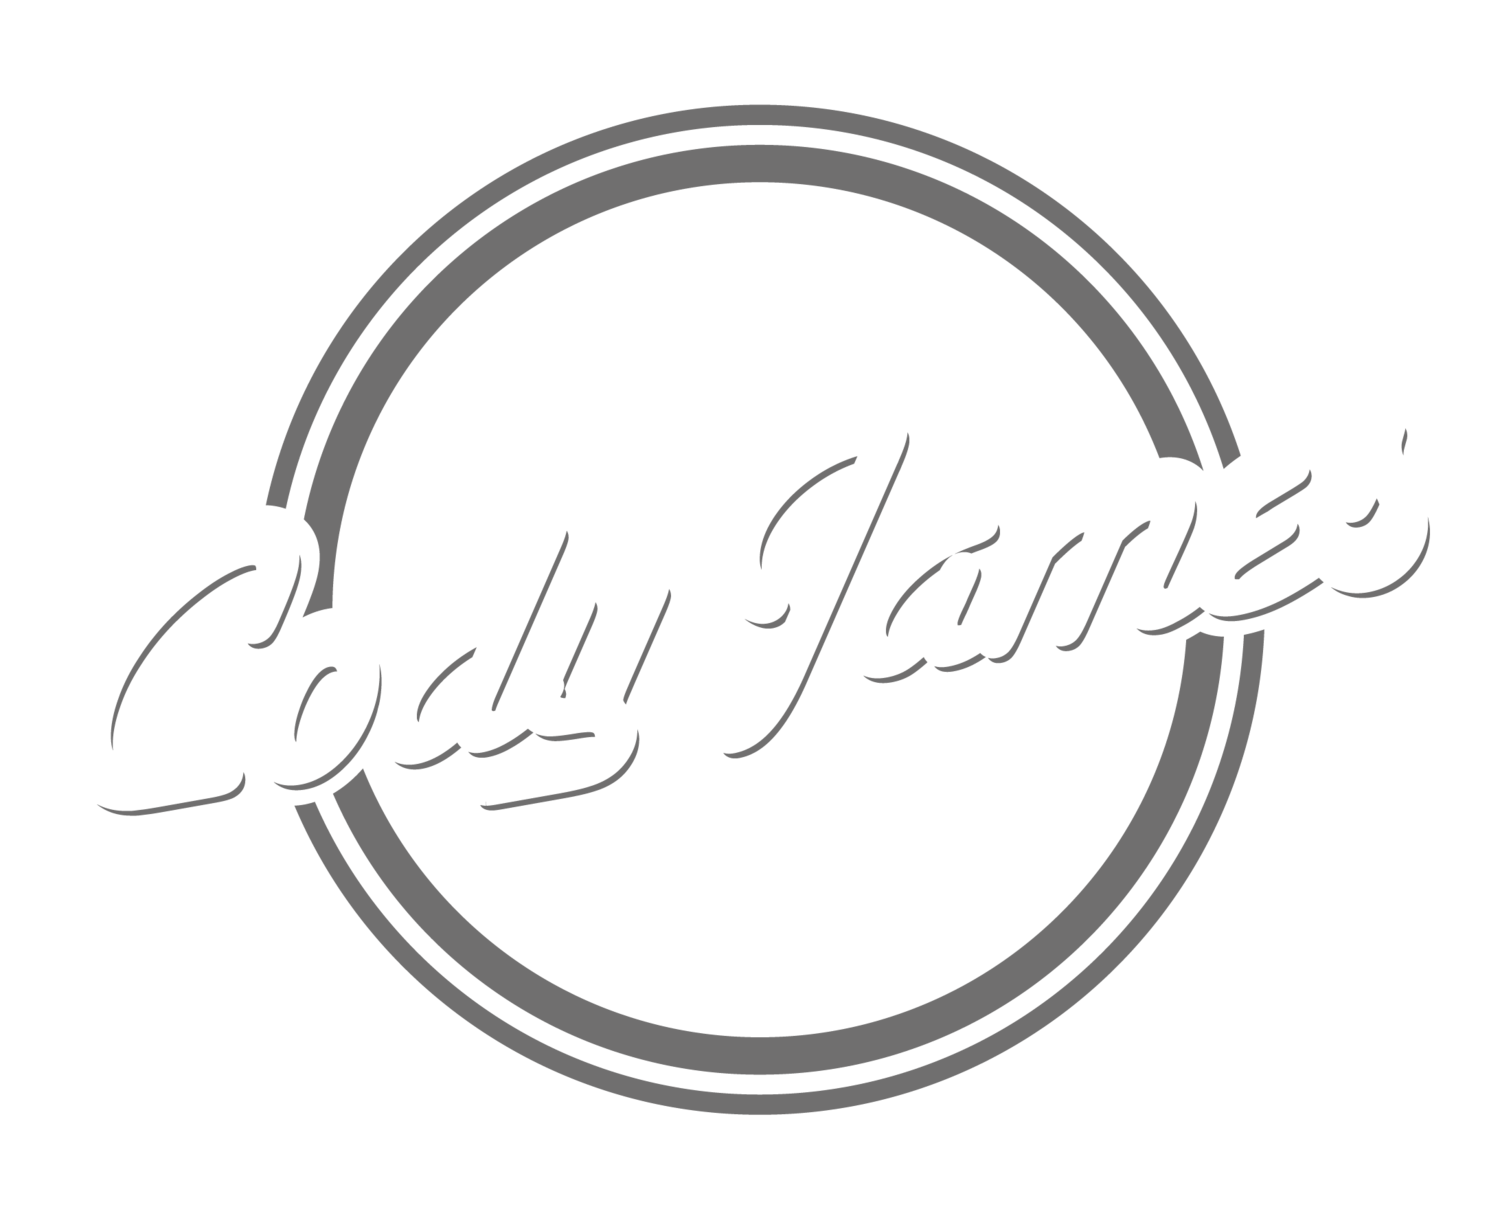 Cody James | Custom Milled Putters